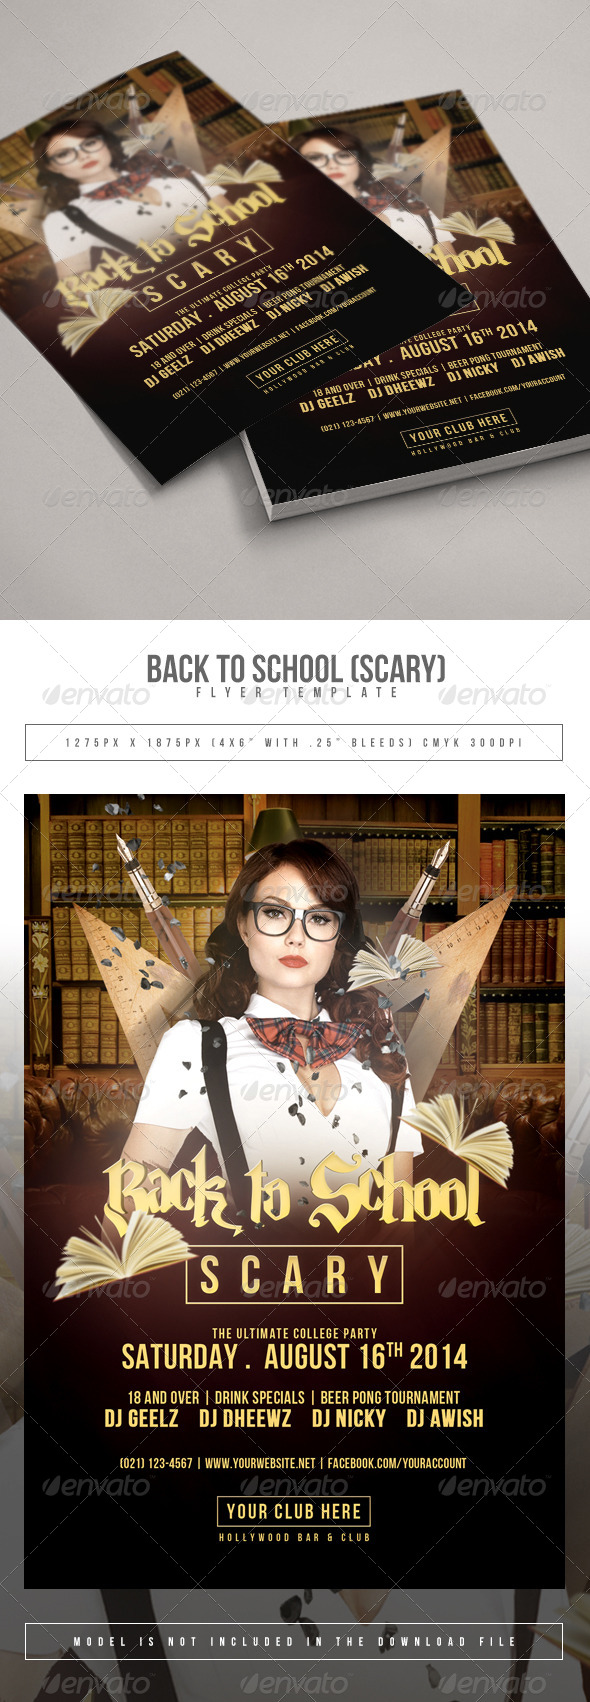 Back To School Scary Flyer Template - Clubs & Parties Events